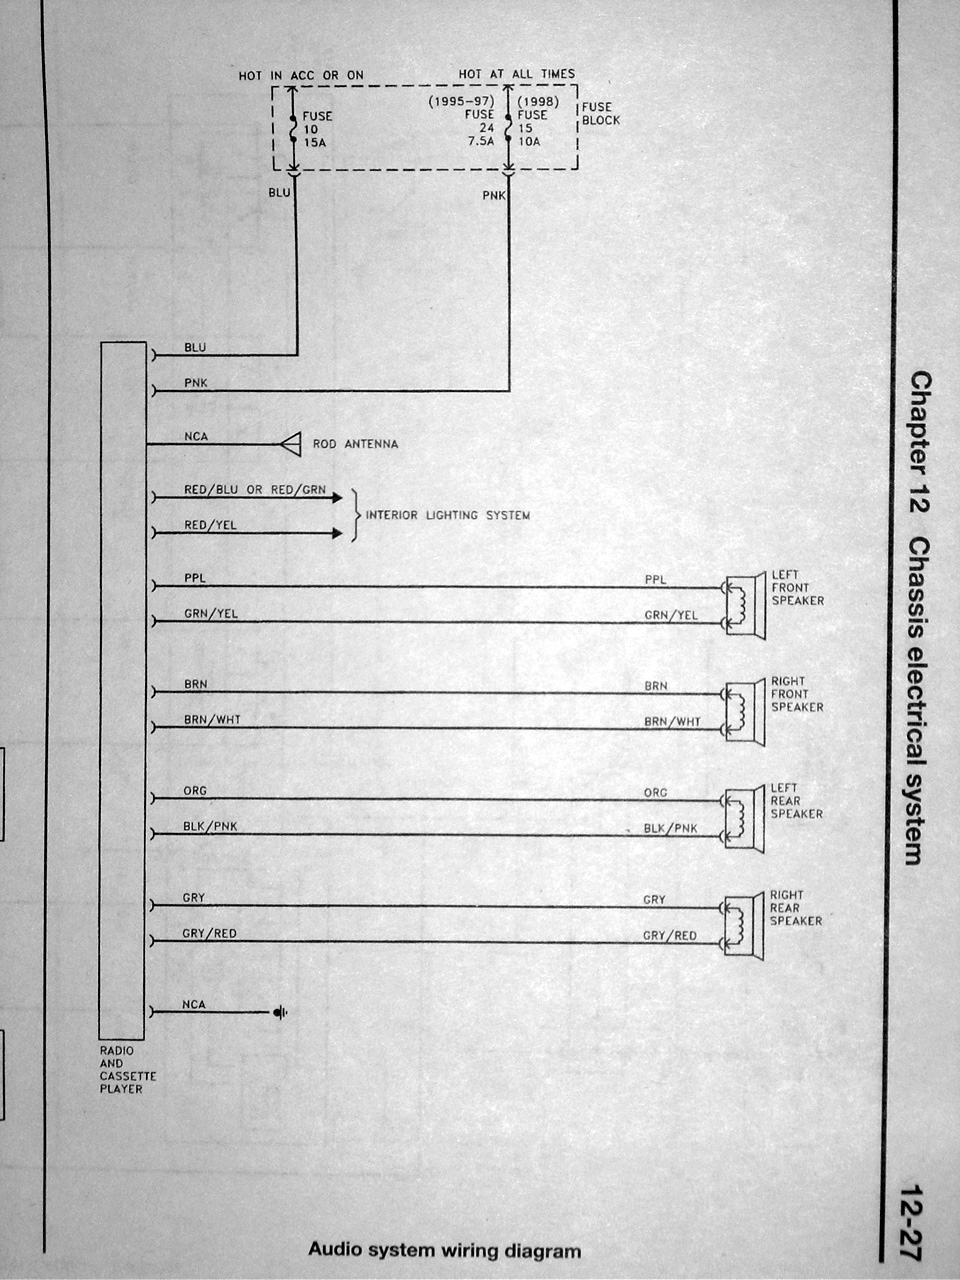 2001 Nissan Sentra Radio Wiring Diagram Maxima Speaker Wire